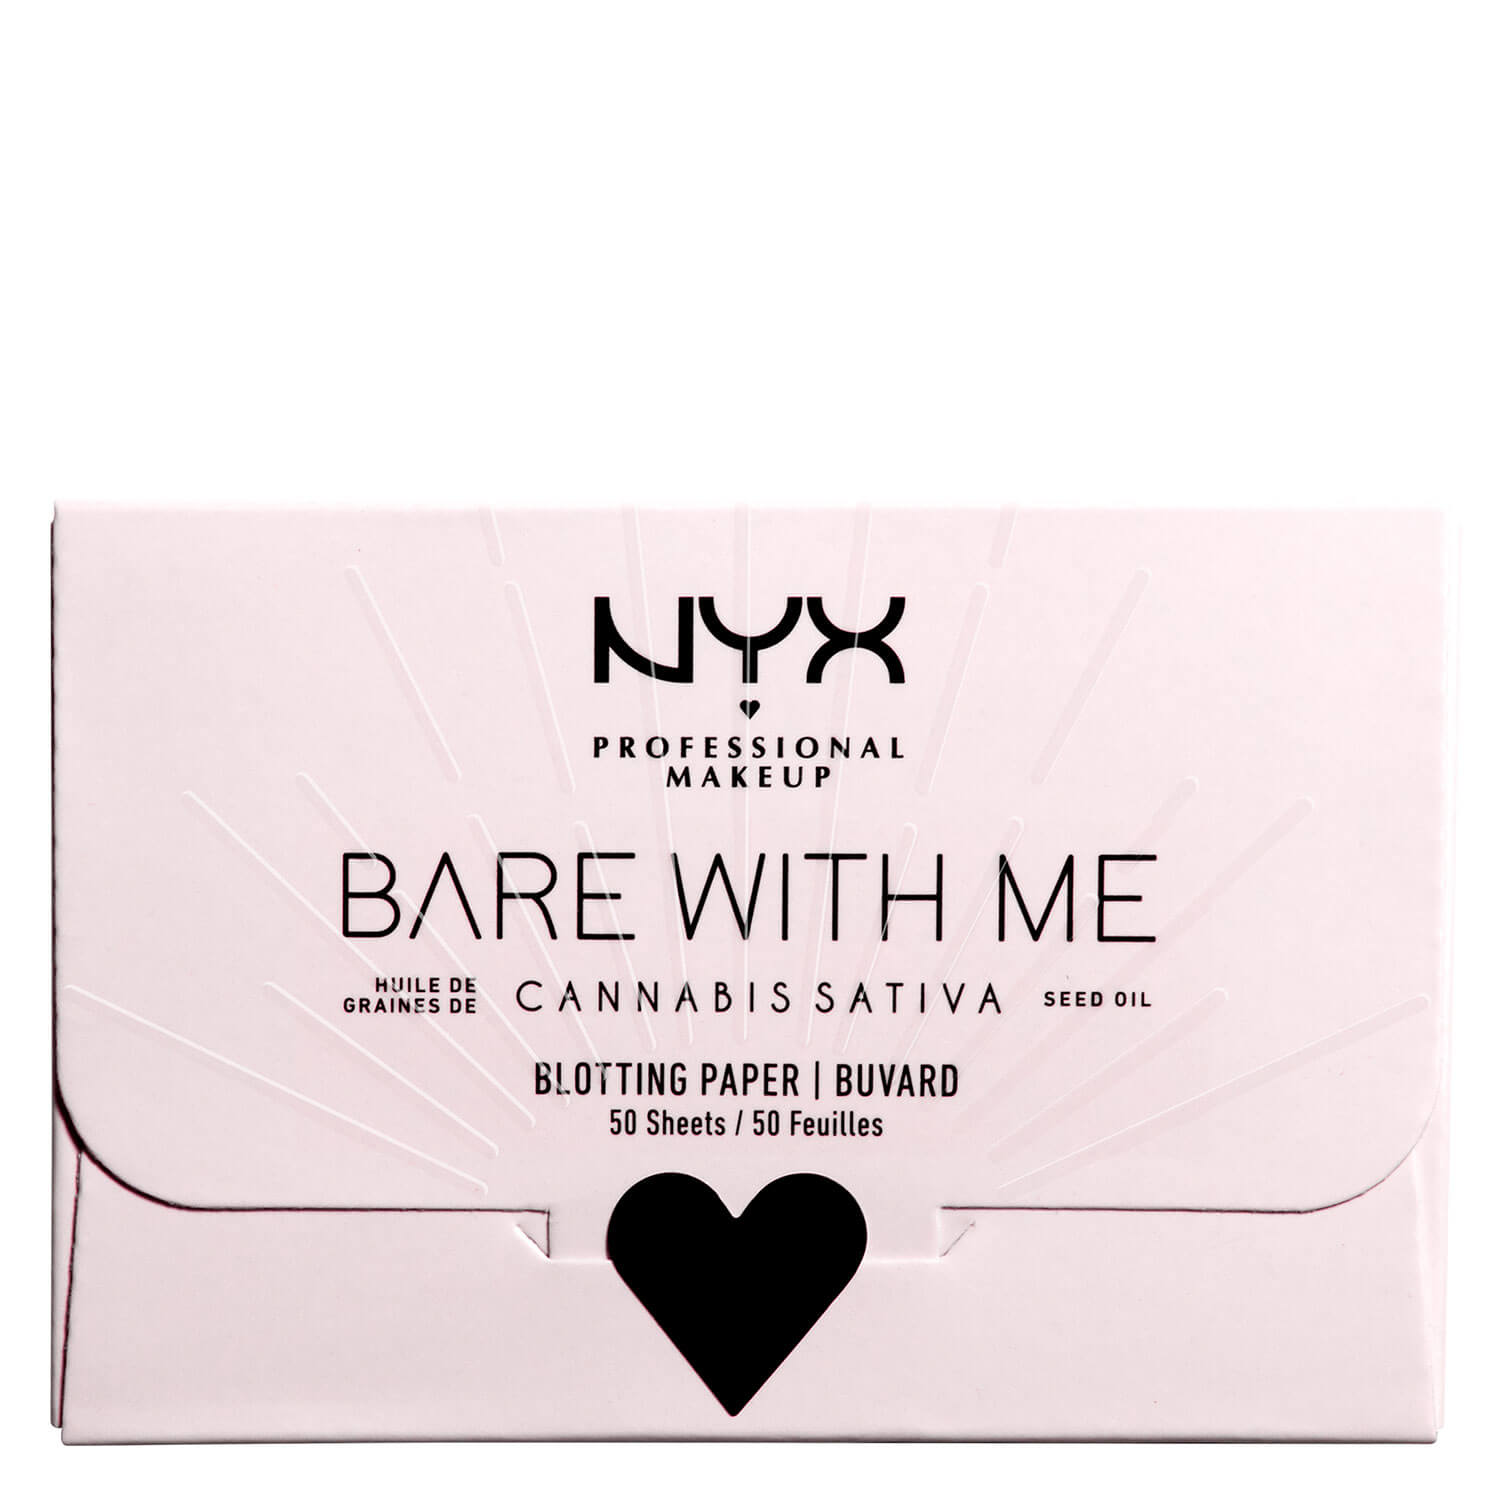 Bare with me - Cannabis Sativa Seed Oil Blotting Paper